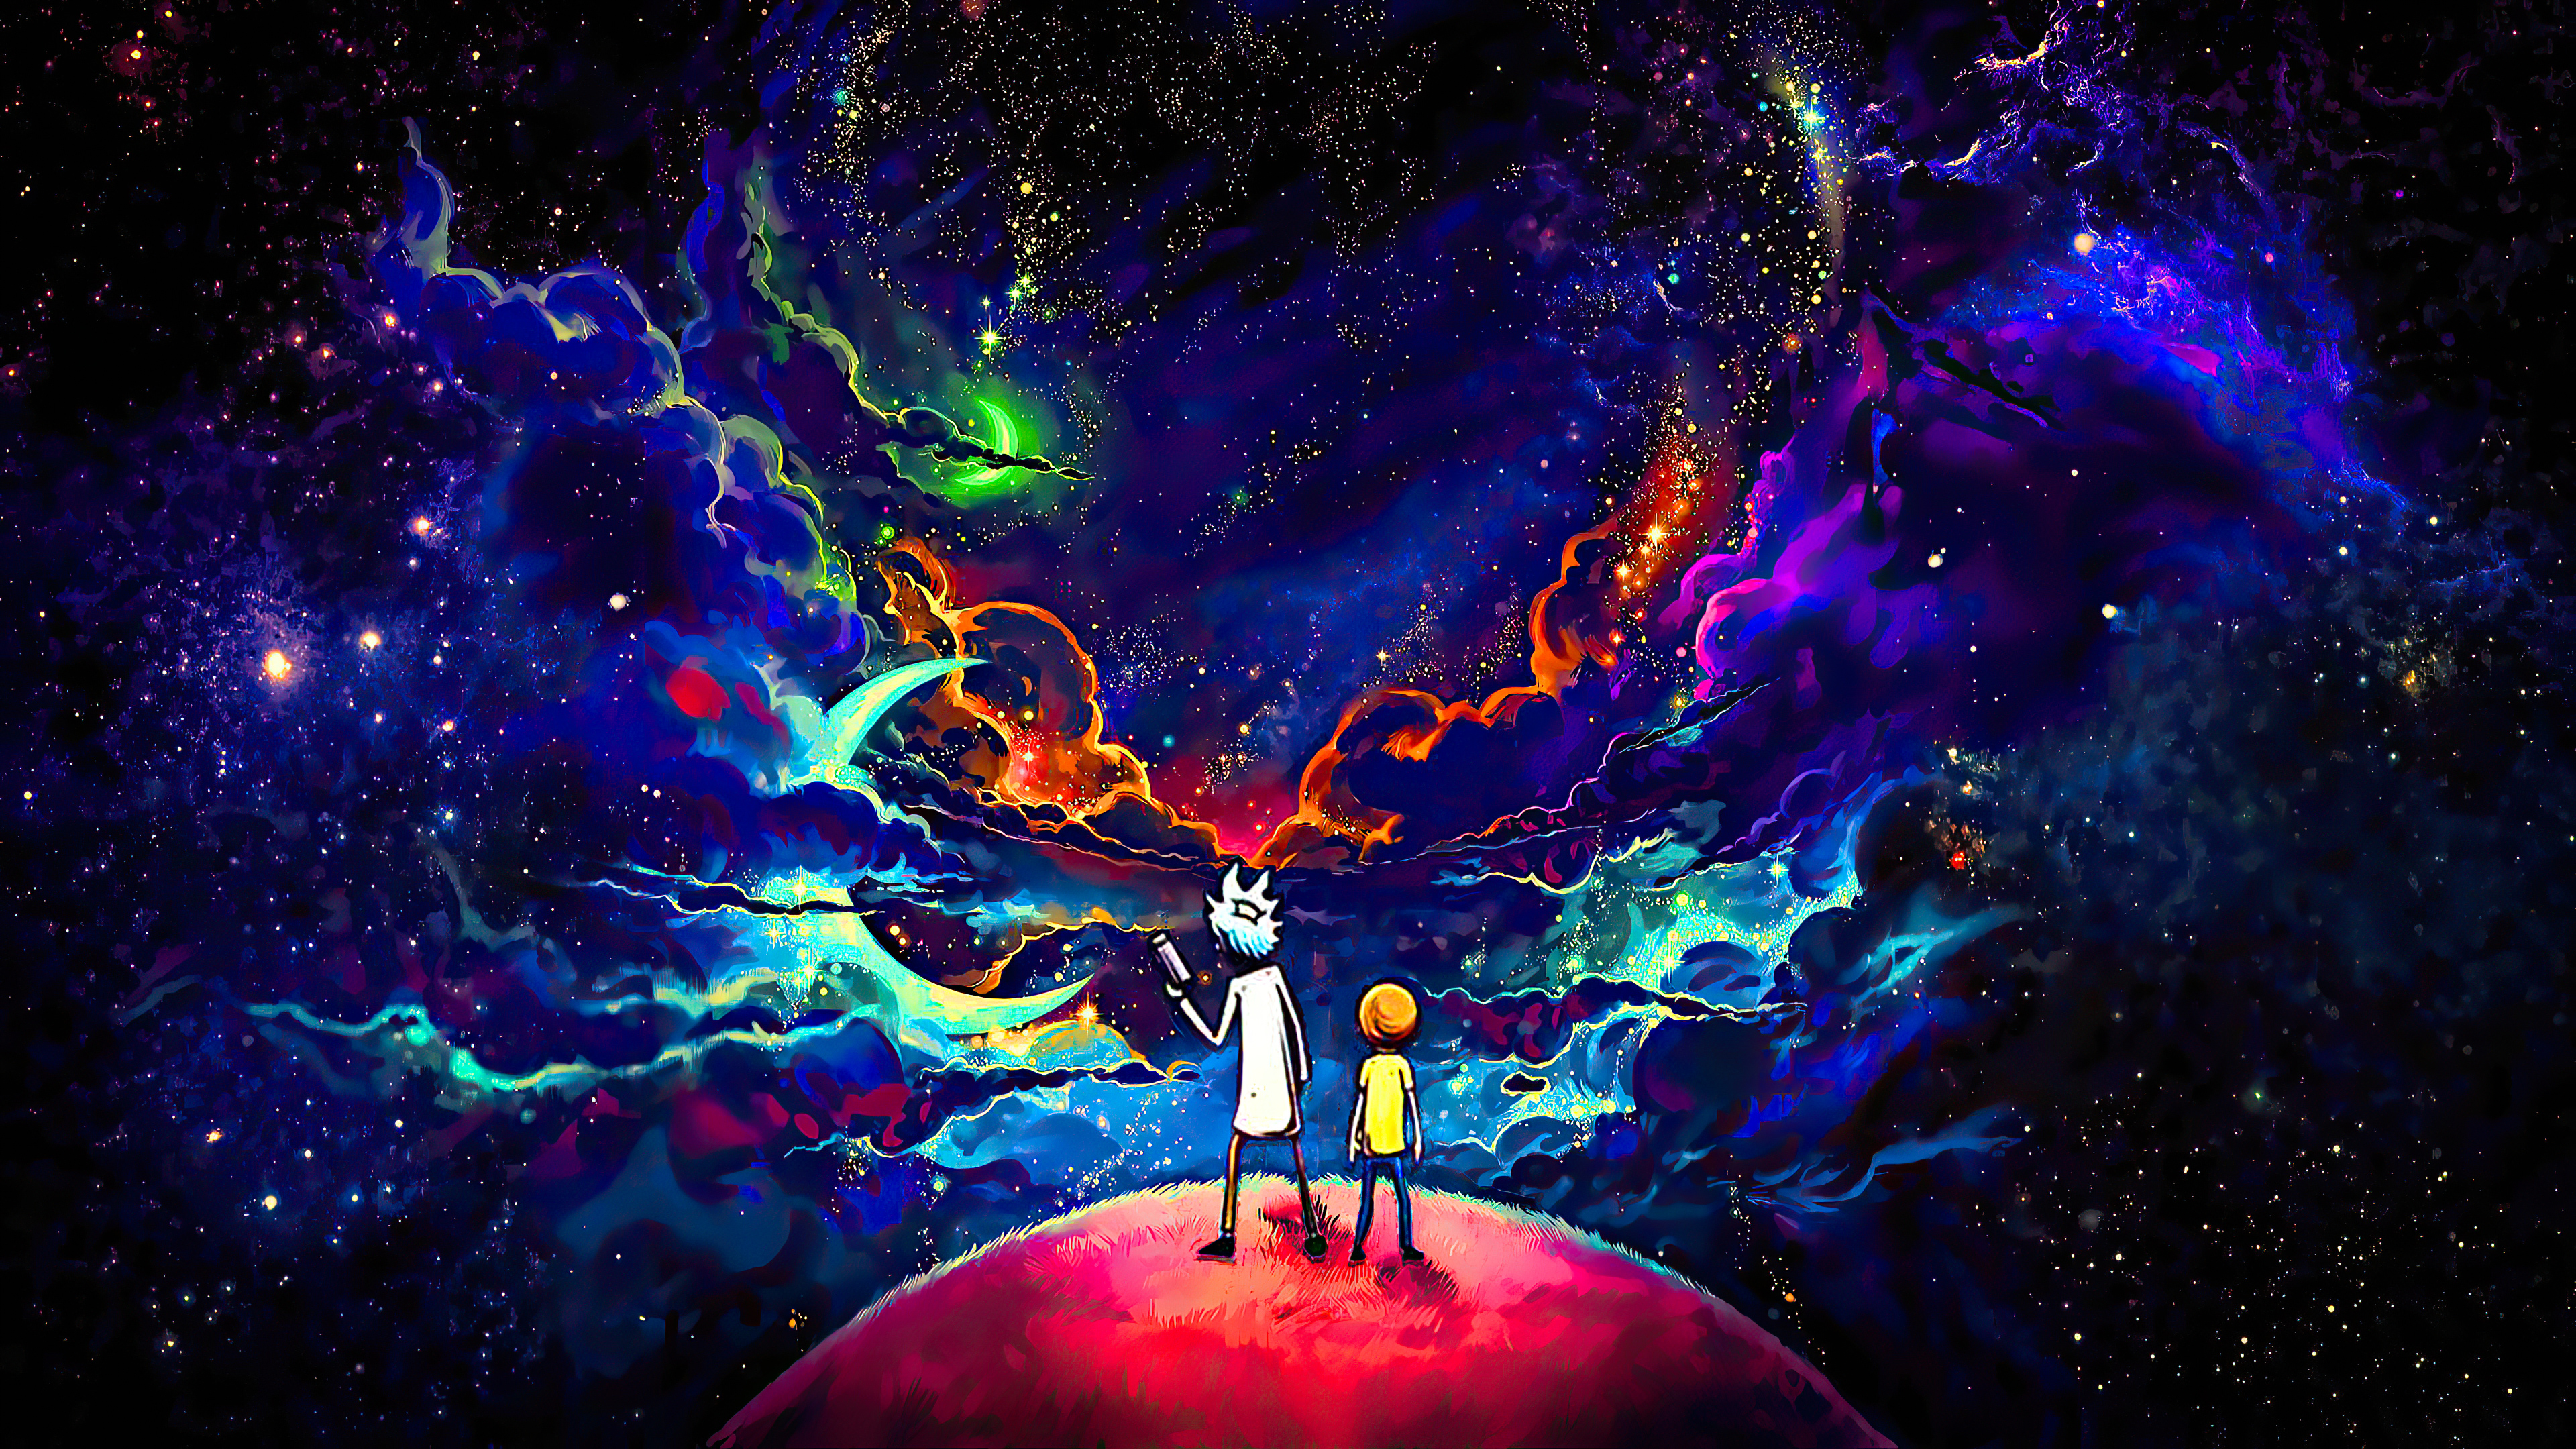 rick and morty orange space art 4k 1602452335 - Rick And Morty Orange Space Art 4k - Rick And Morty Orange Space Art 4k wallpapers